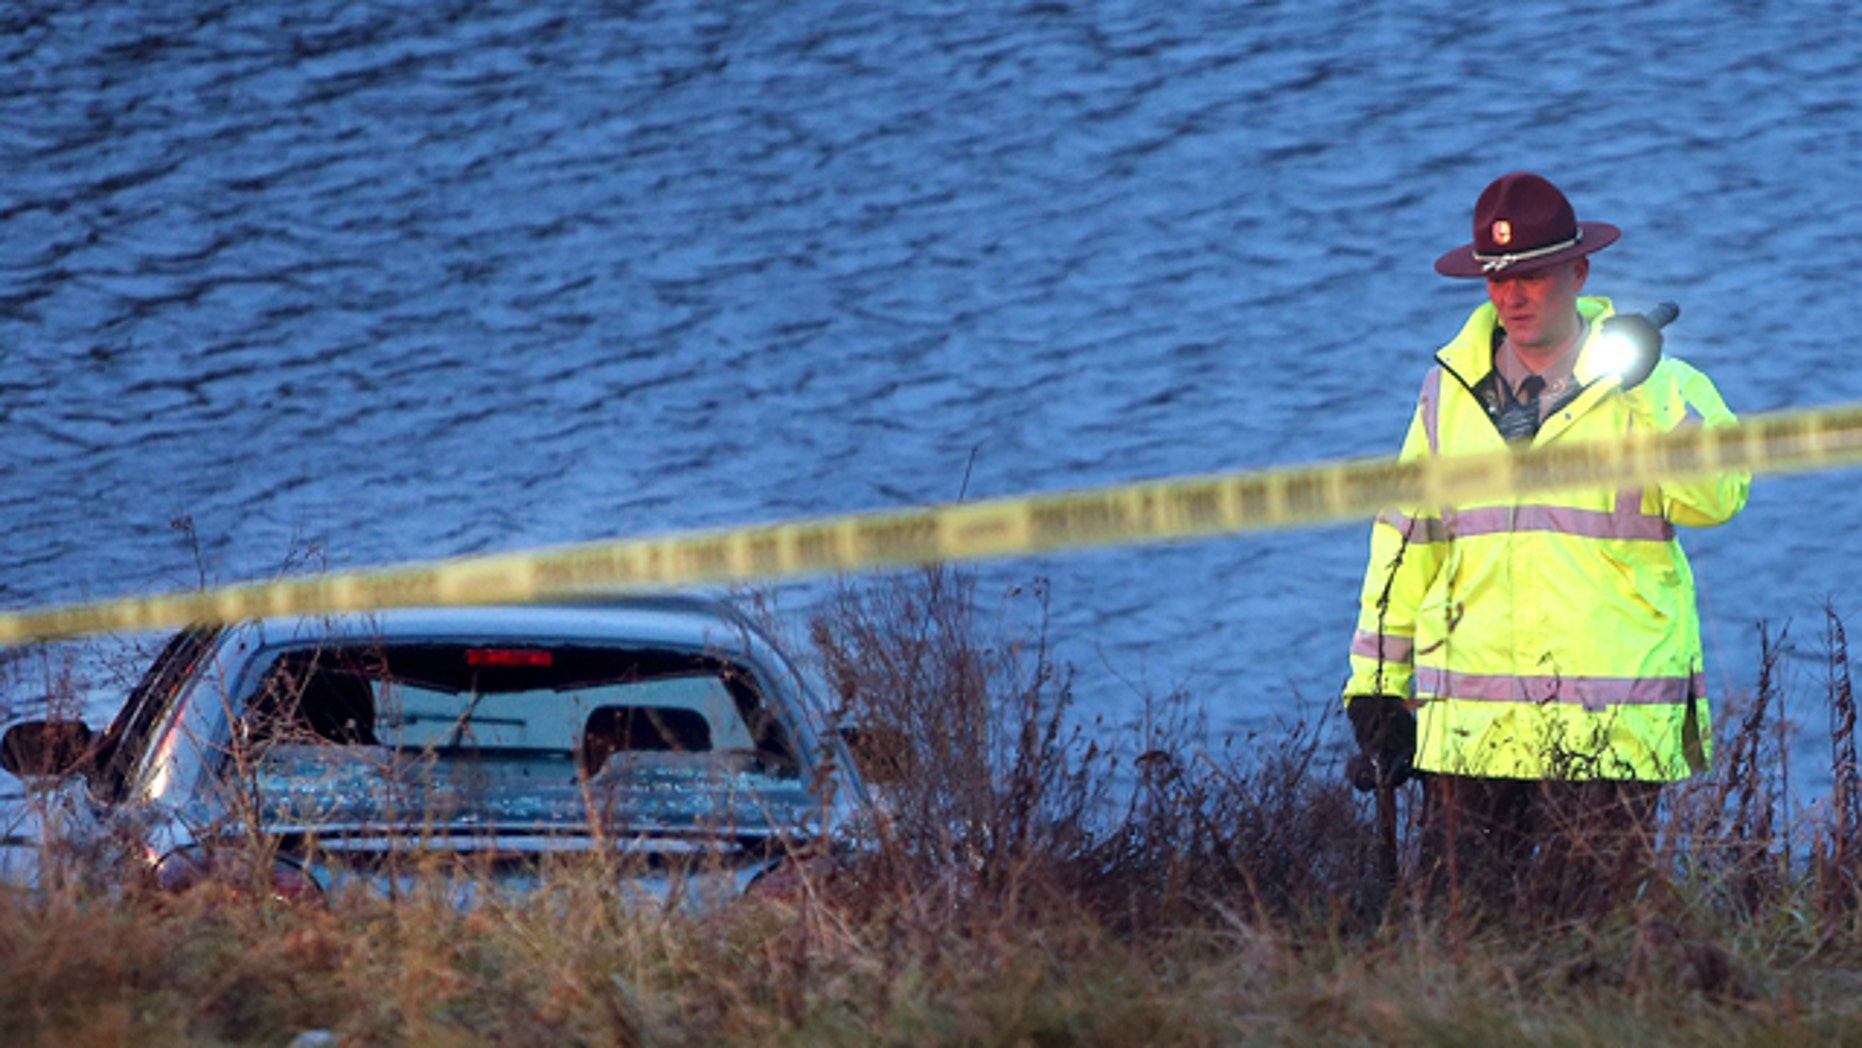 Nov. 21, 2013: A police officer investigates the scene where six people were rescued after their car went into a holding pond near a highway exit ramp.